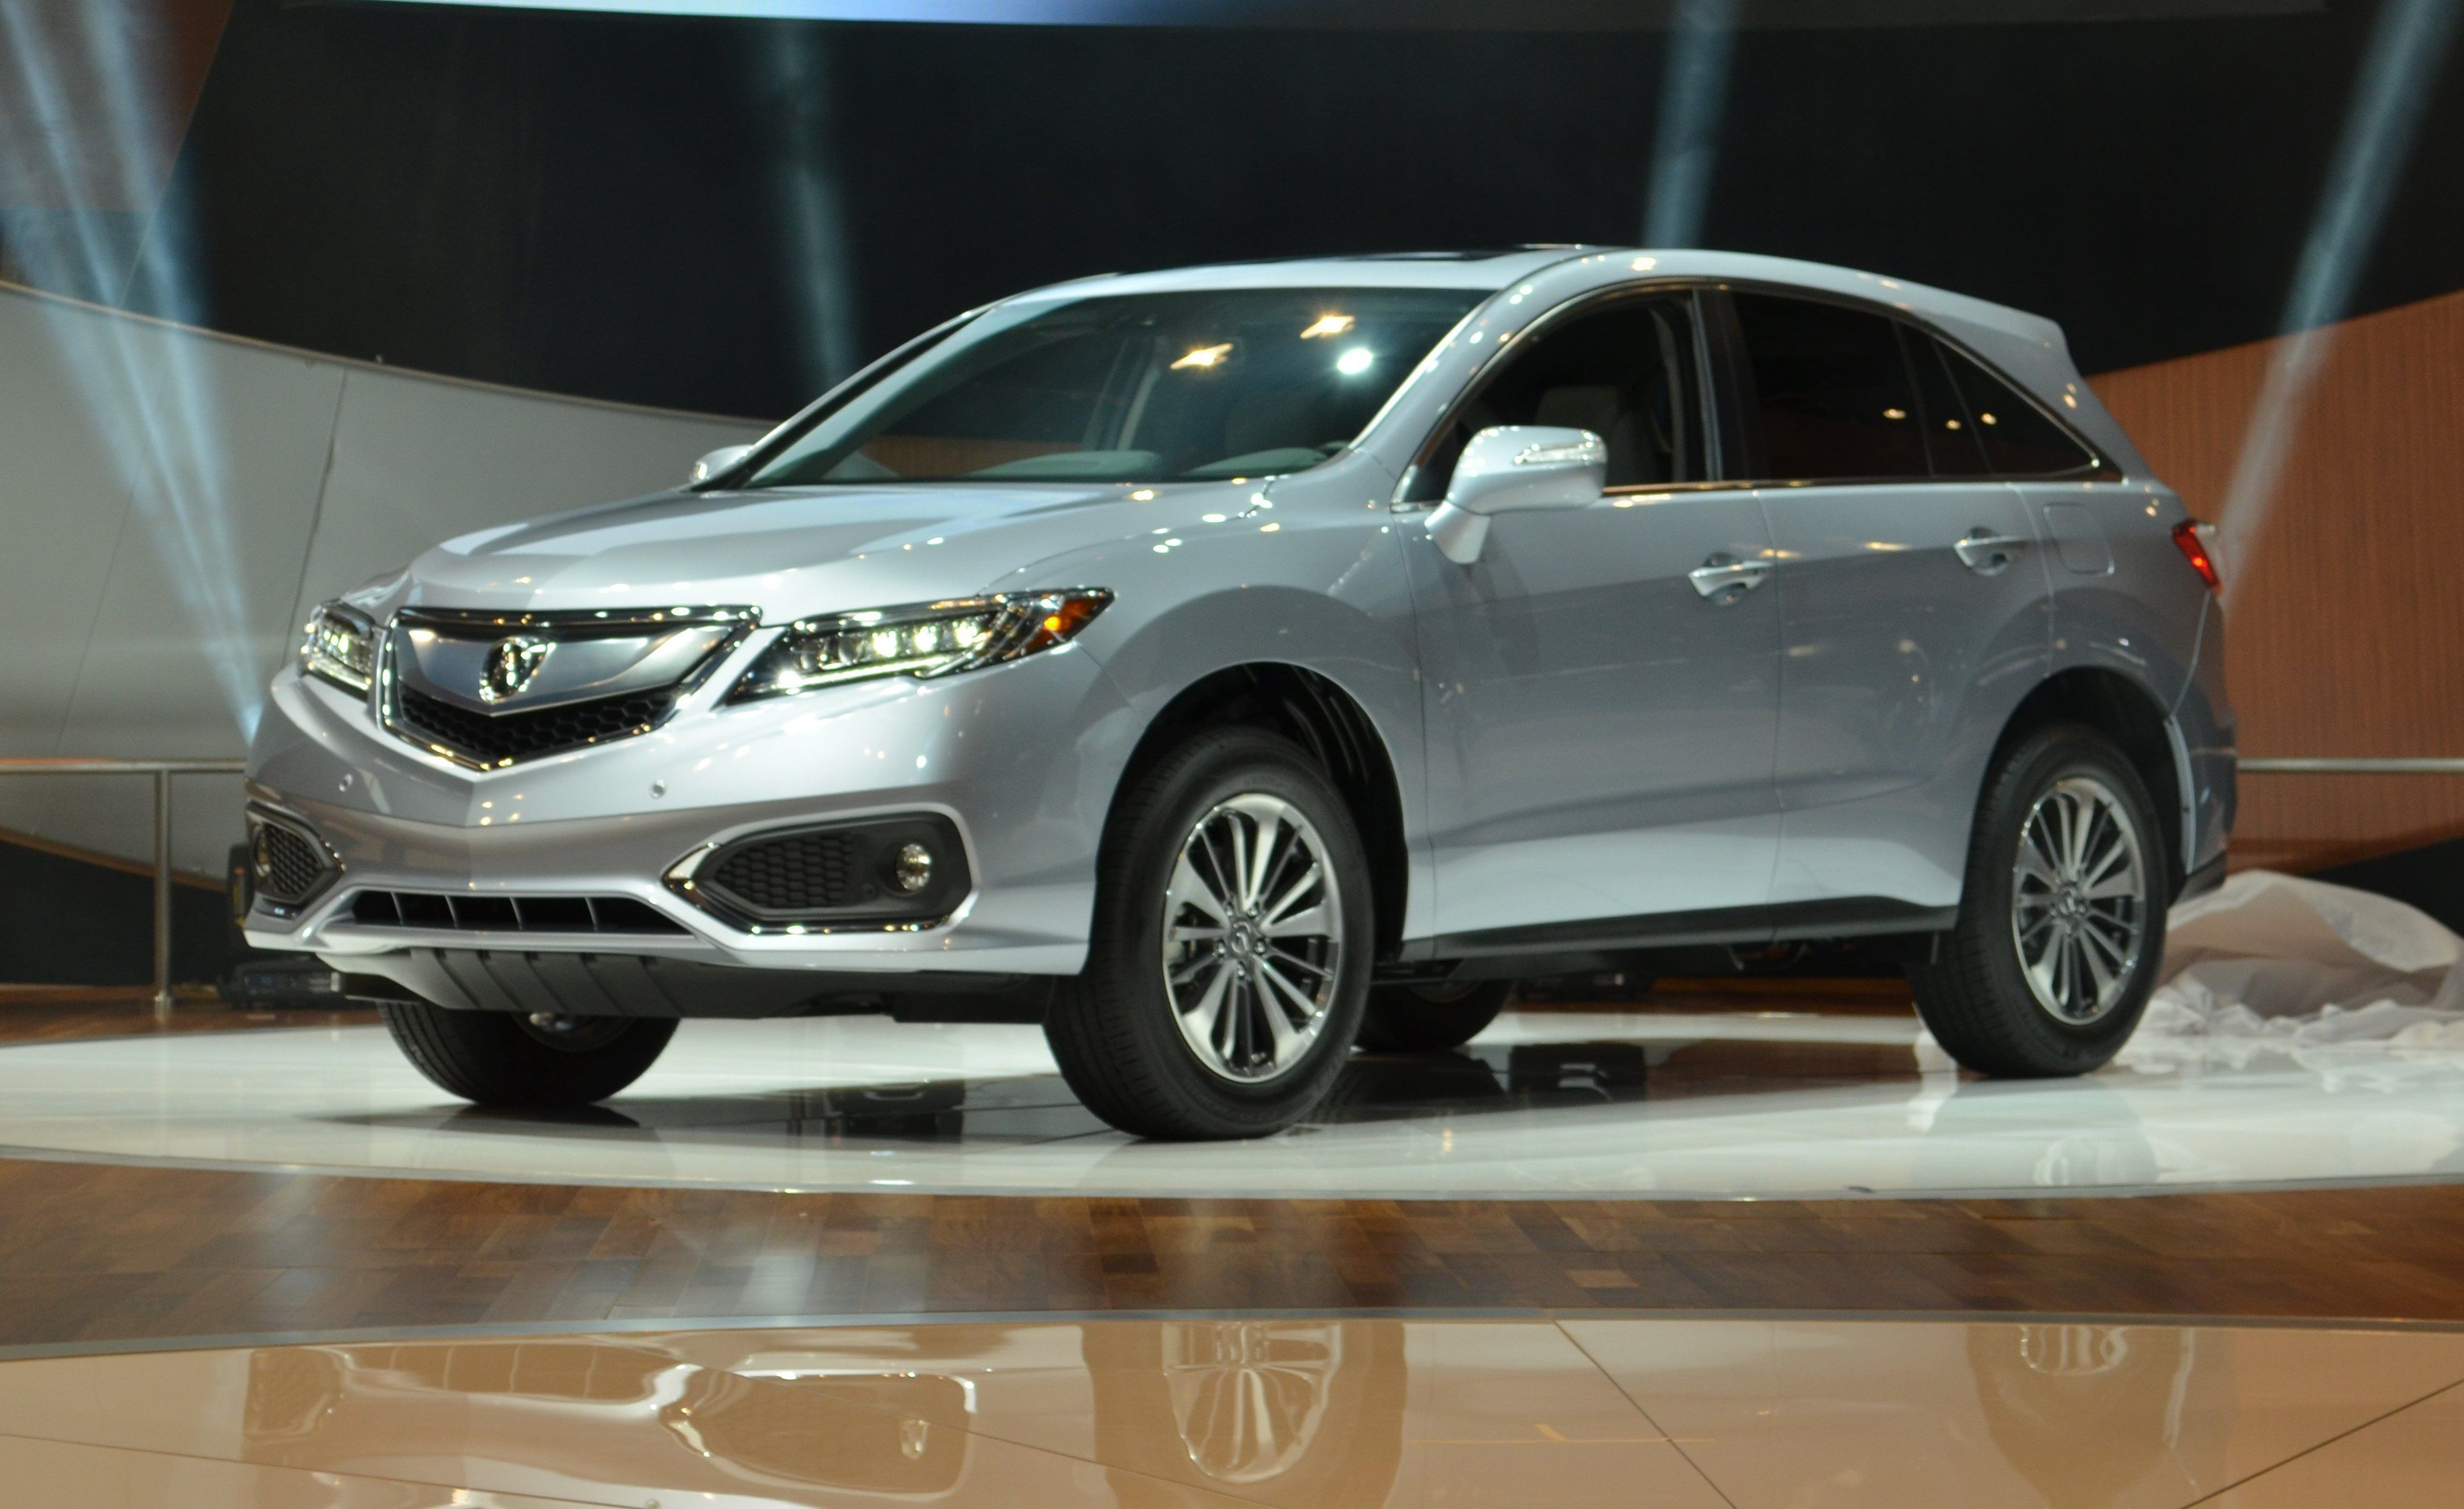 2020 Acura Rdx 2020 Acura Rdx Review Acura Mdx 2020 Labelithawaii Auto Super Car